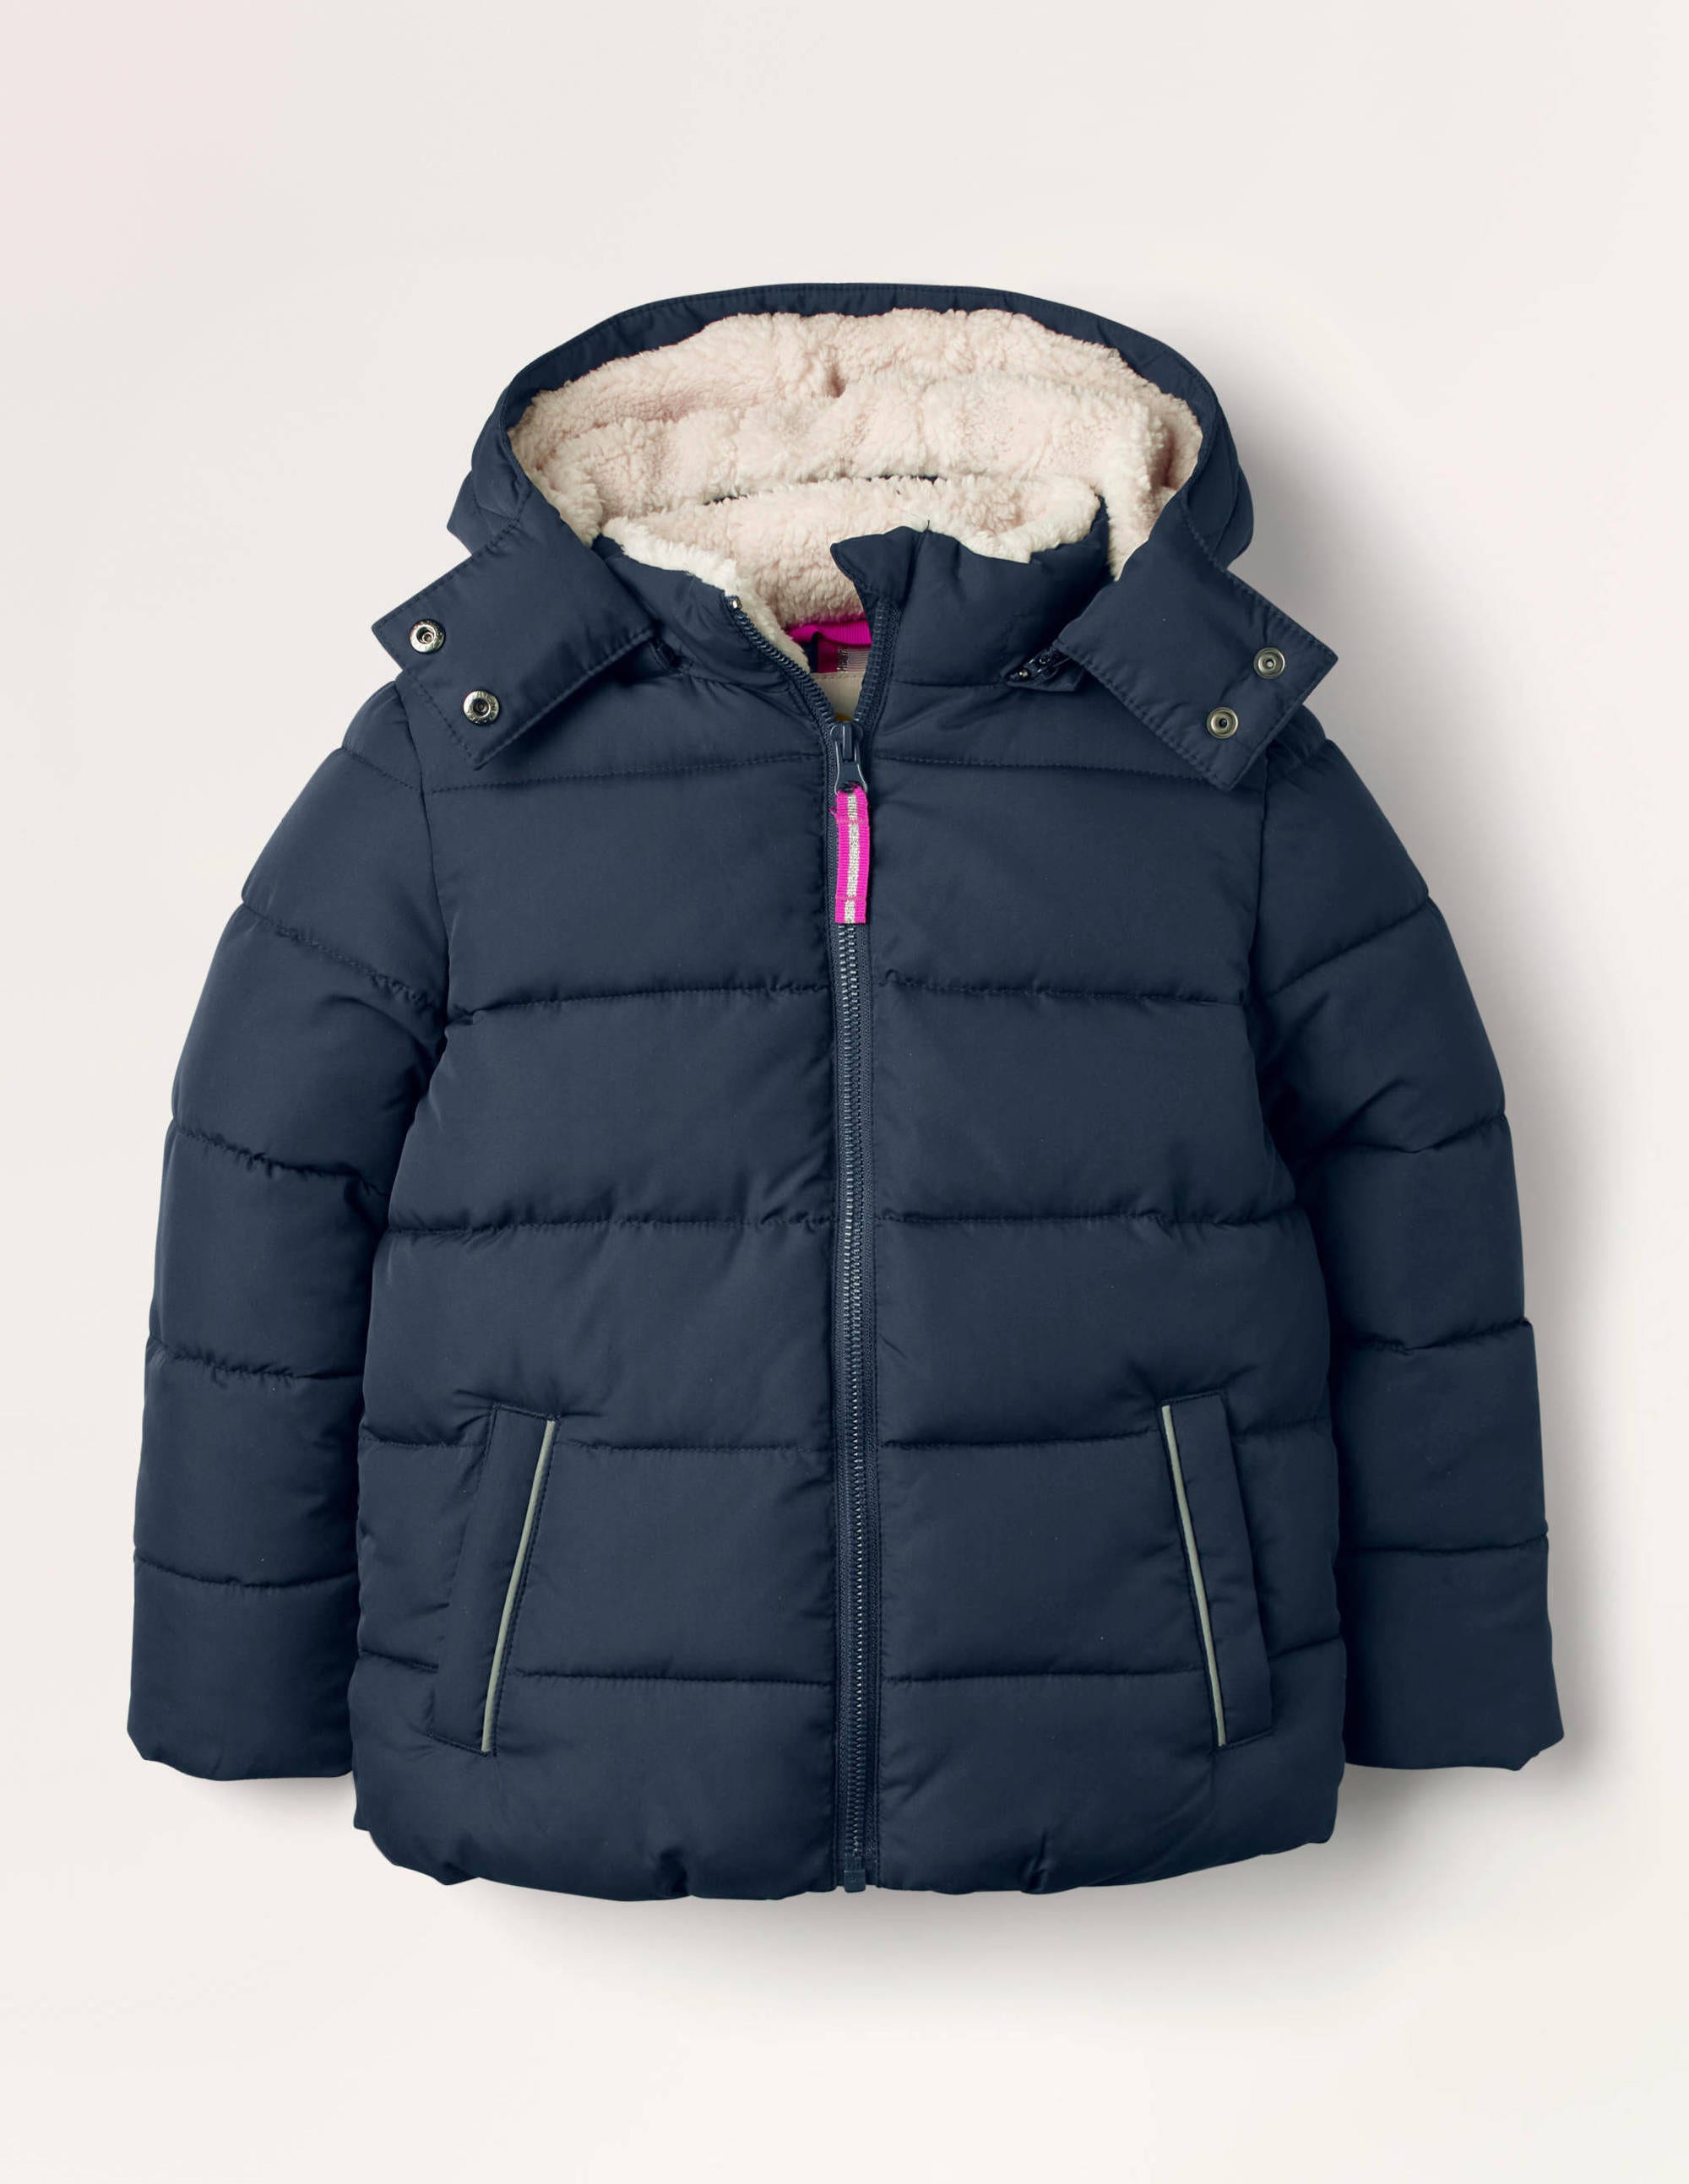 Boden Cosy Padded Jacket - College Navy